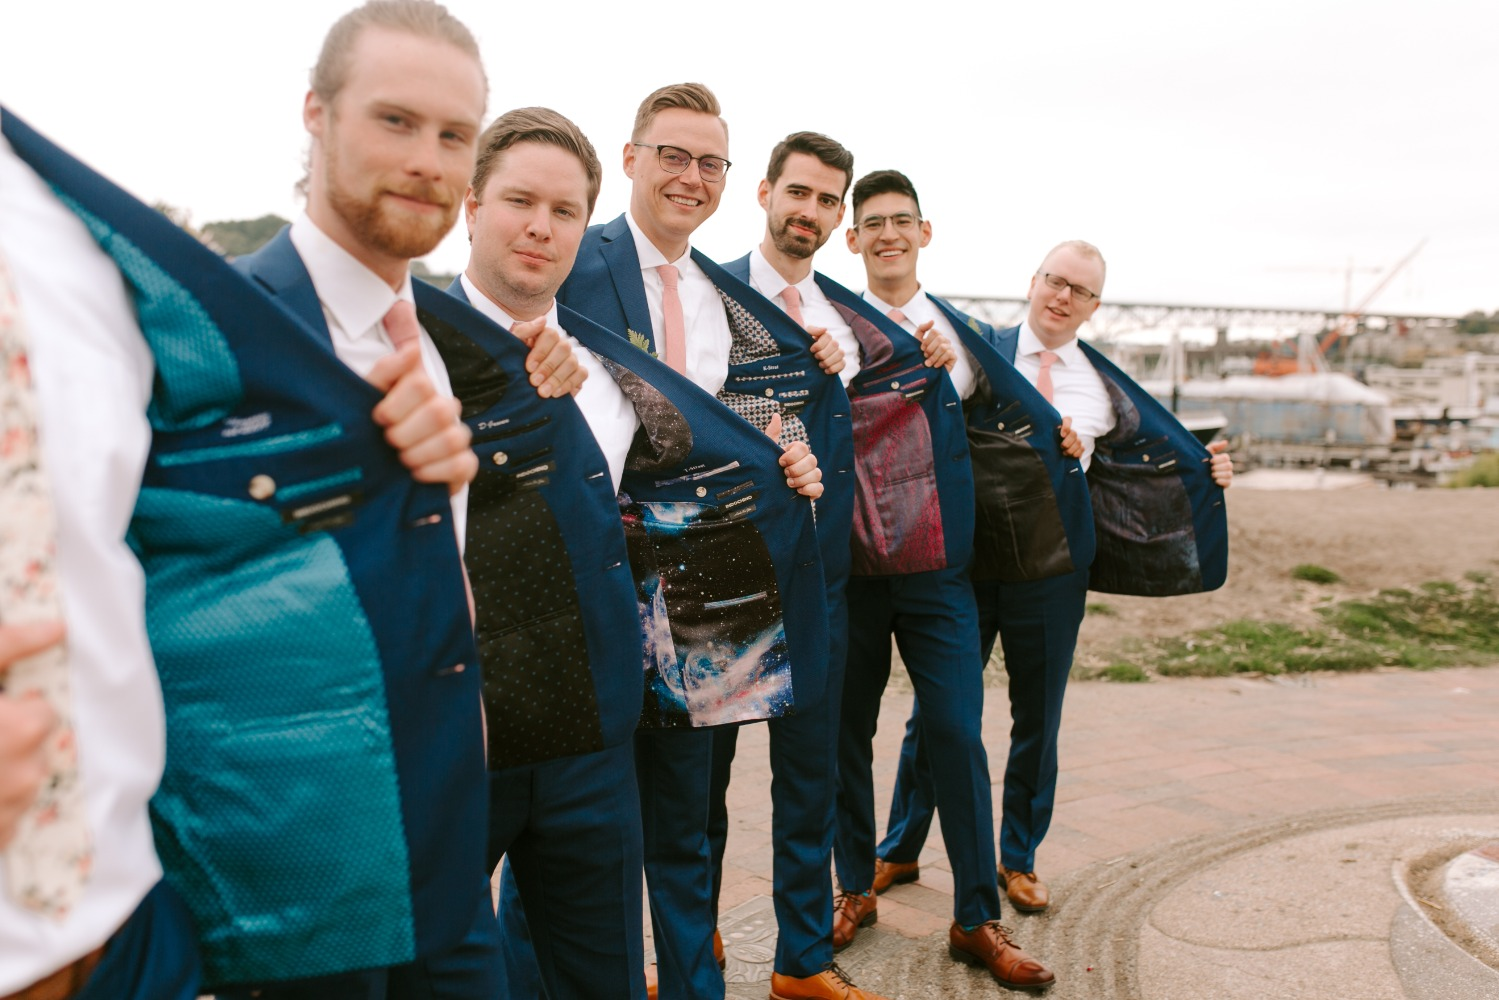 groom and his men with unique vests